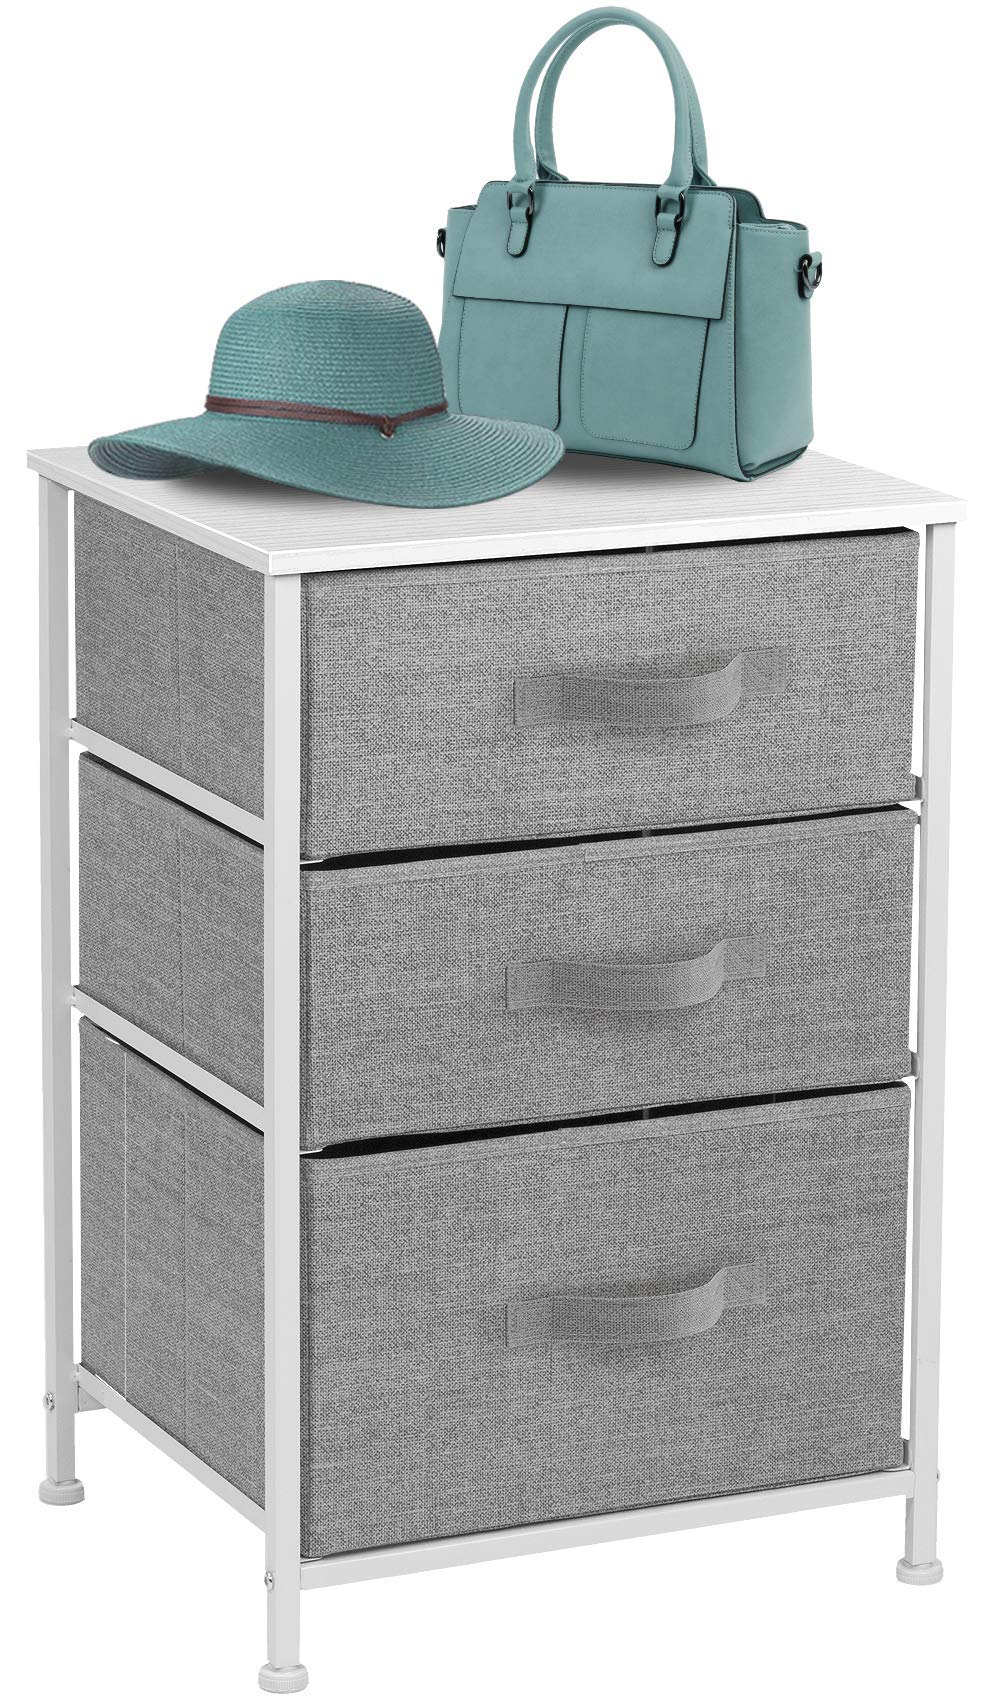 Sorbus Nightstand with 3 Drawers - Bedside Furniture & Accent End Table Chest for Home, Bedroom Accessories, Office, College Dorm, Steel Frame, Wood Top, Easy Pull Fabric Bins (3-Drawer, White/Gray)